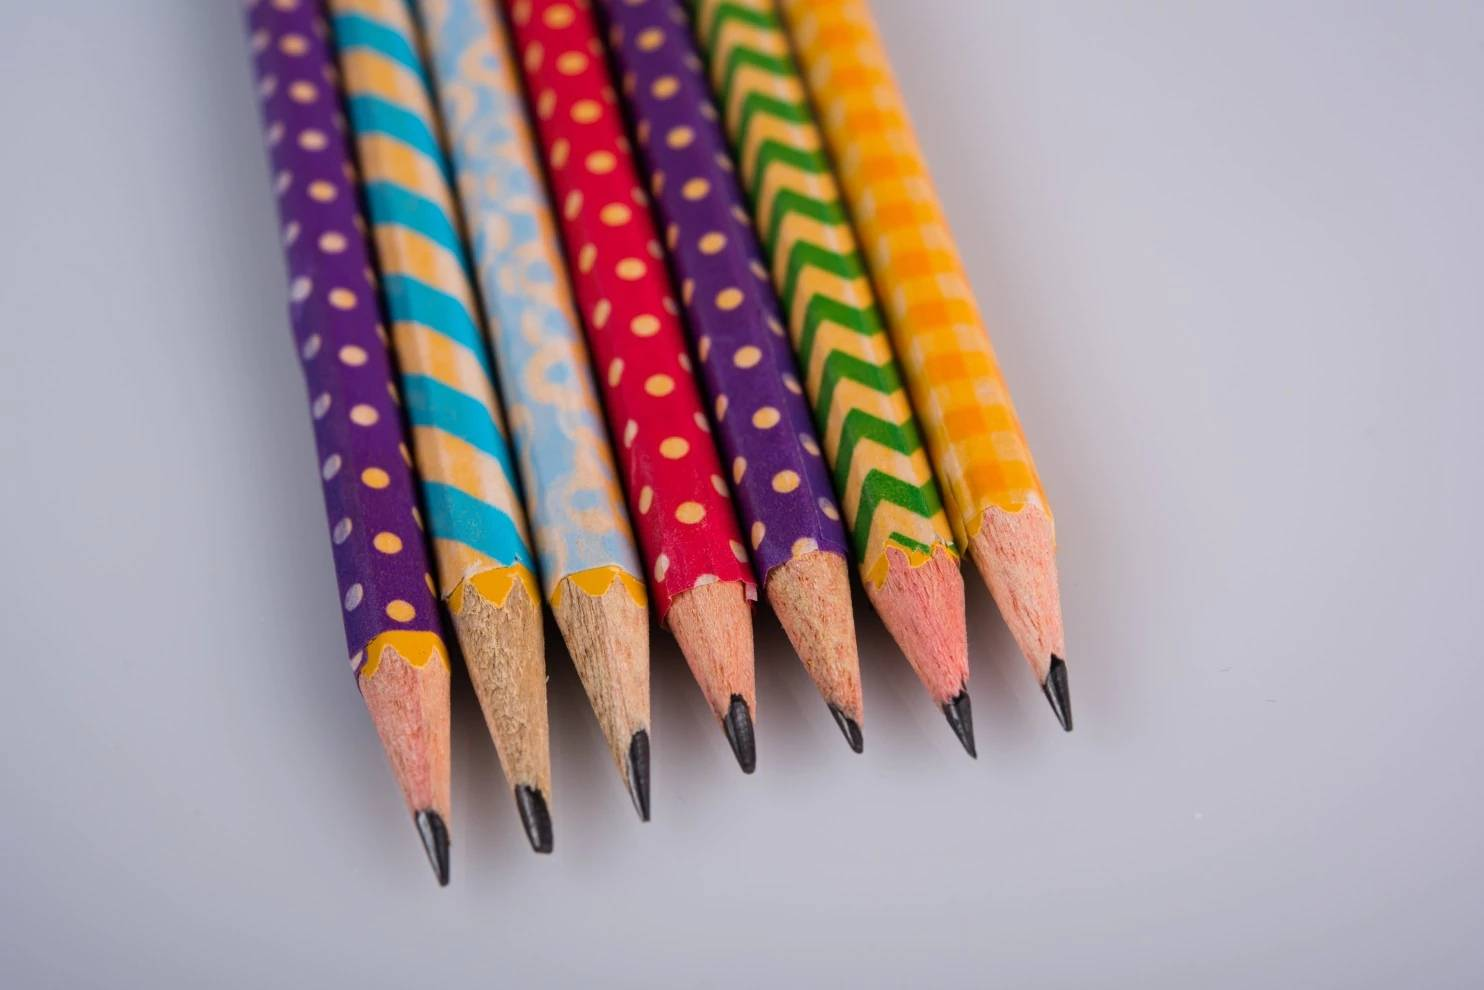 DIY Washi-tape Pencils